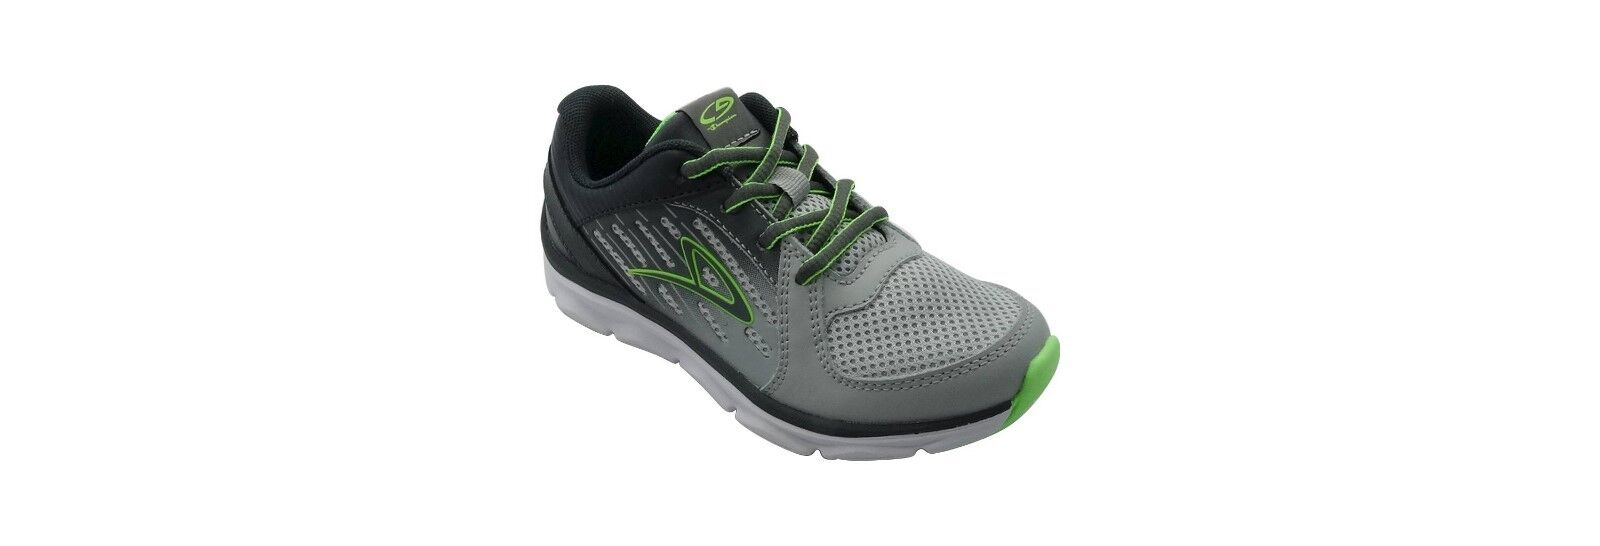 086971ad277e NEW Boys  Performance Athletic Shoes Connect 3 - C9 Champion Gray 5 ...